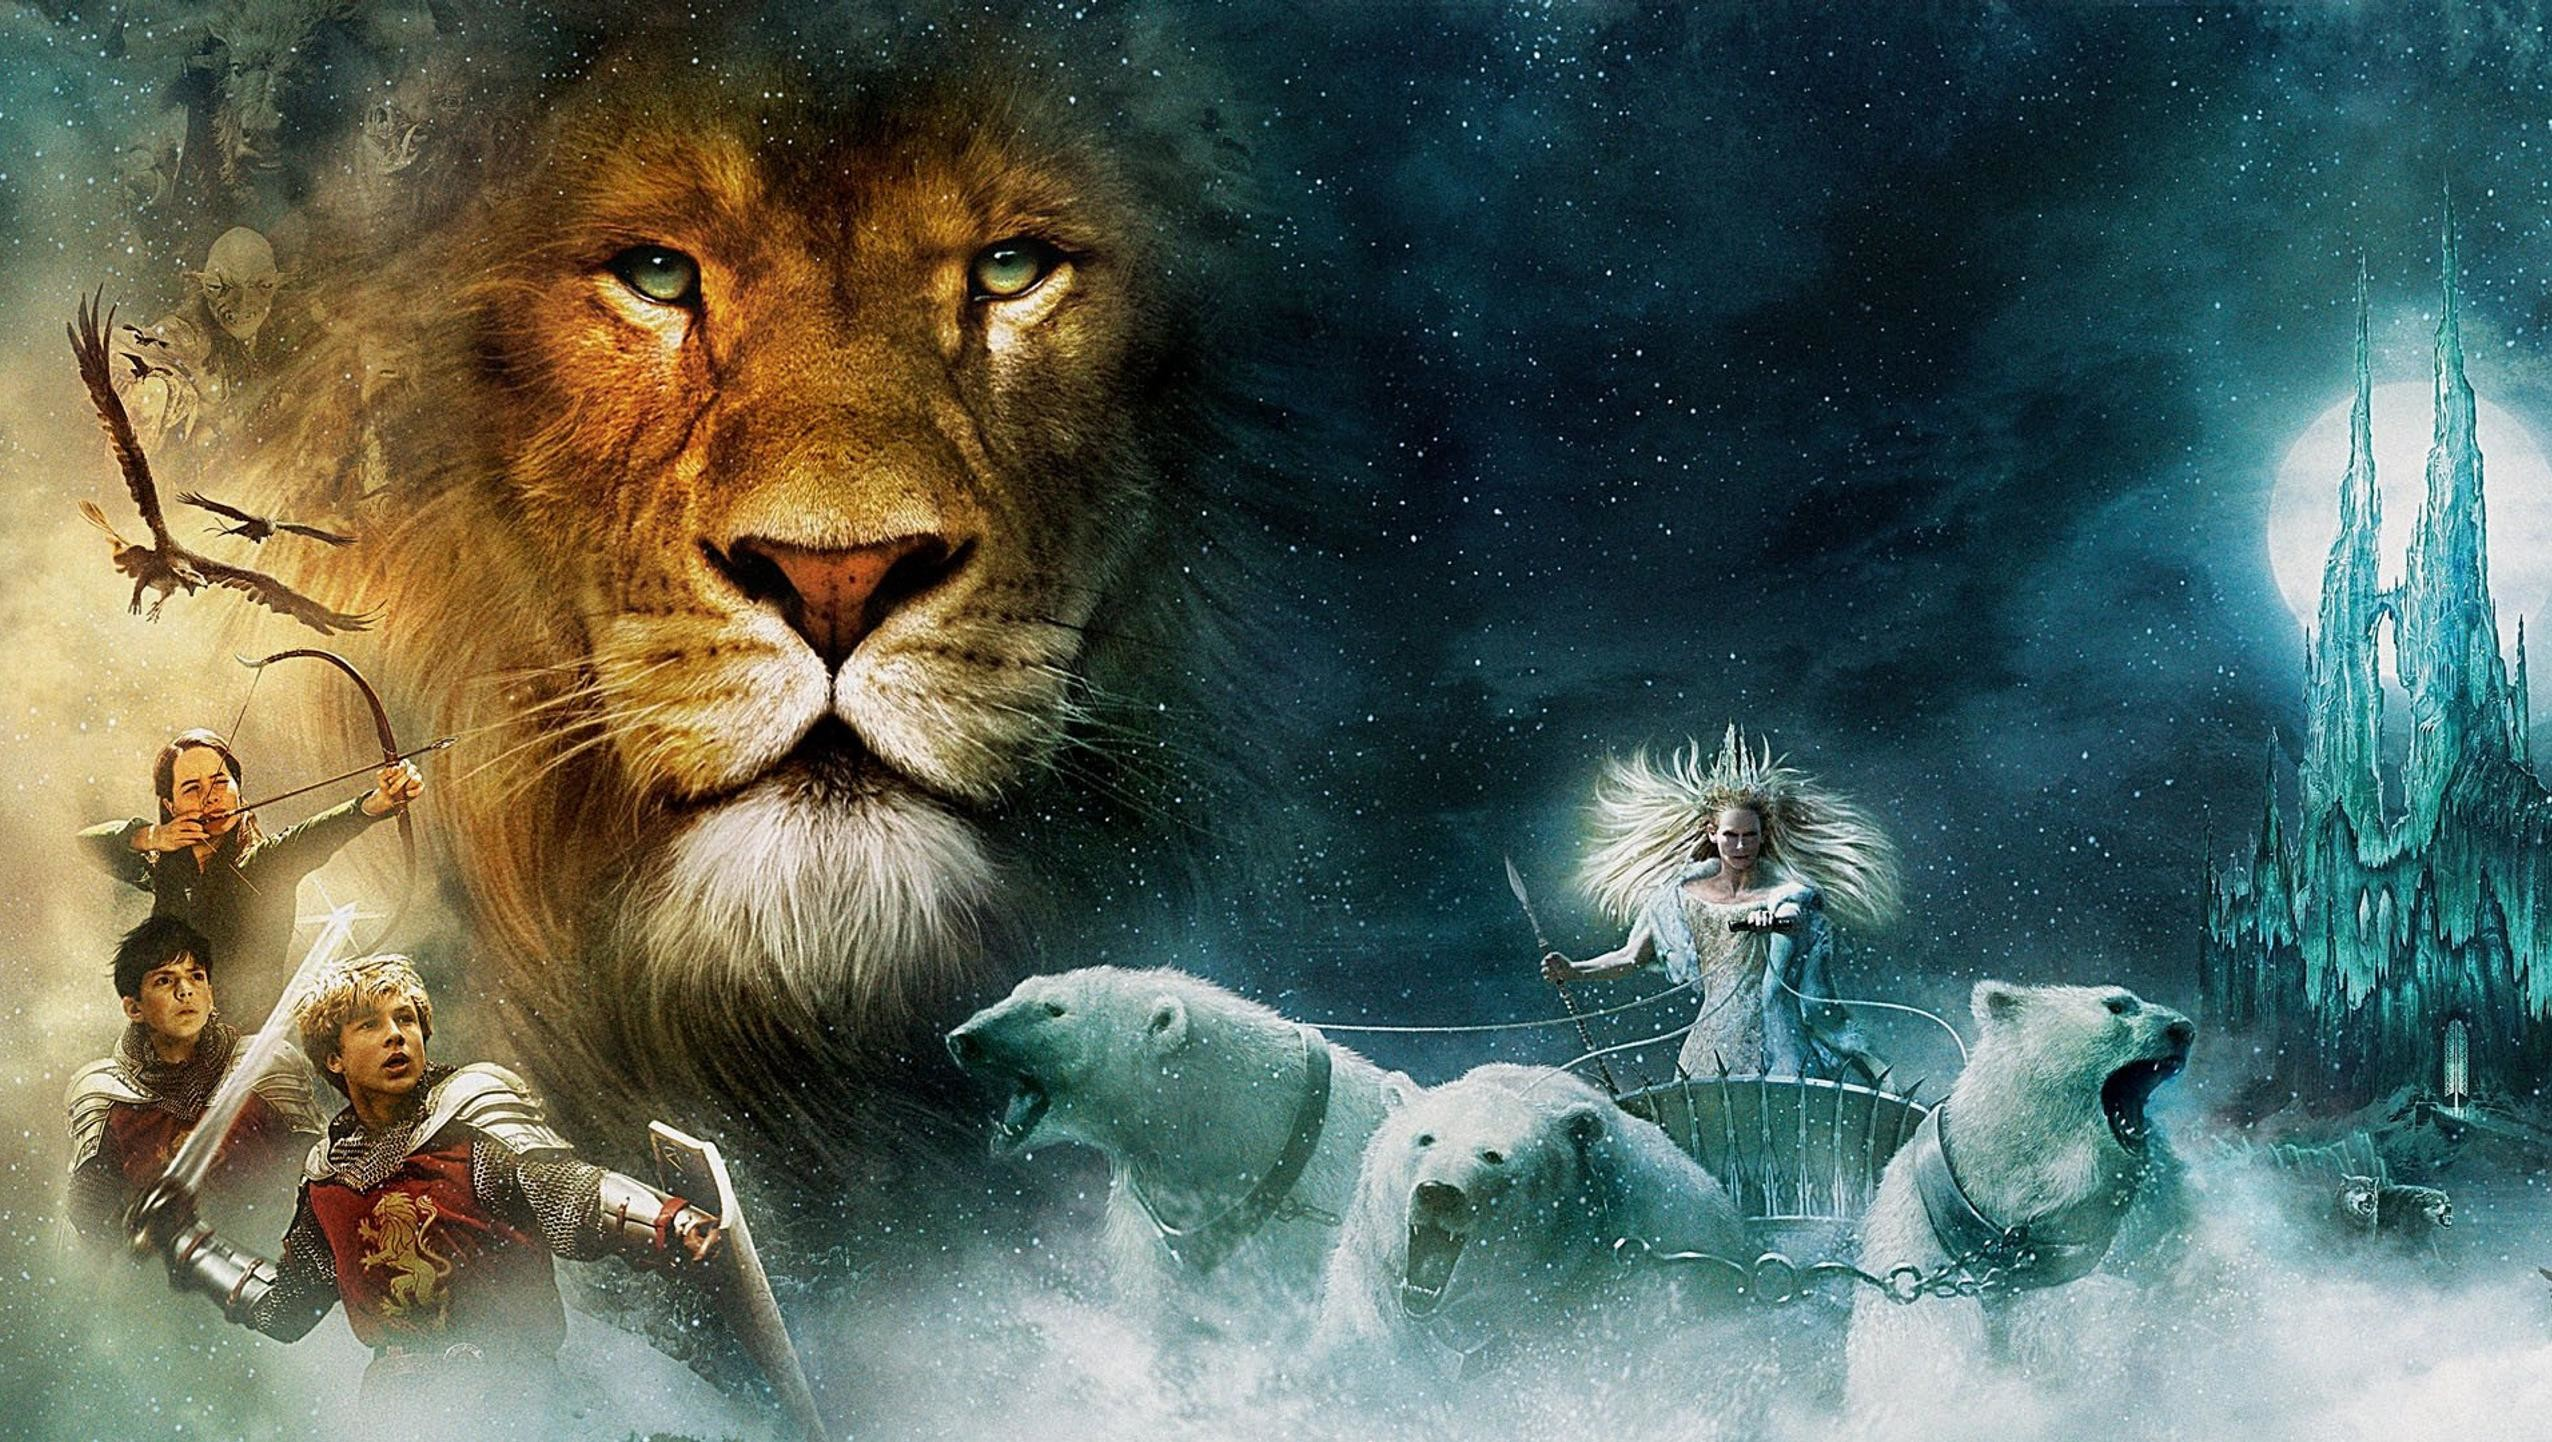 """Res: 2552x1442, Wallpaper for """"The Chronicles of Narnia: The Lion, the Witch and the  Wardrobe"""